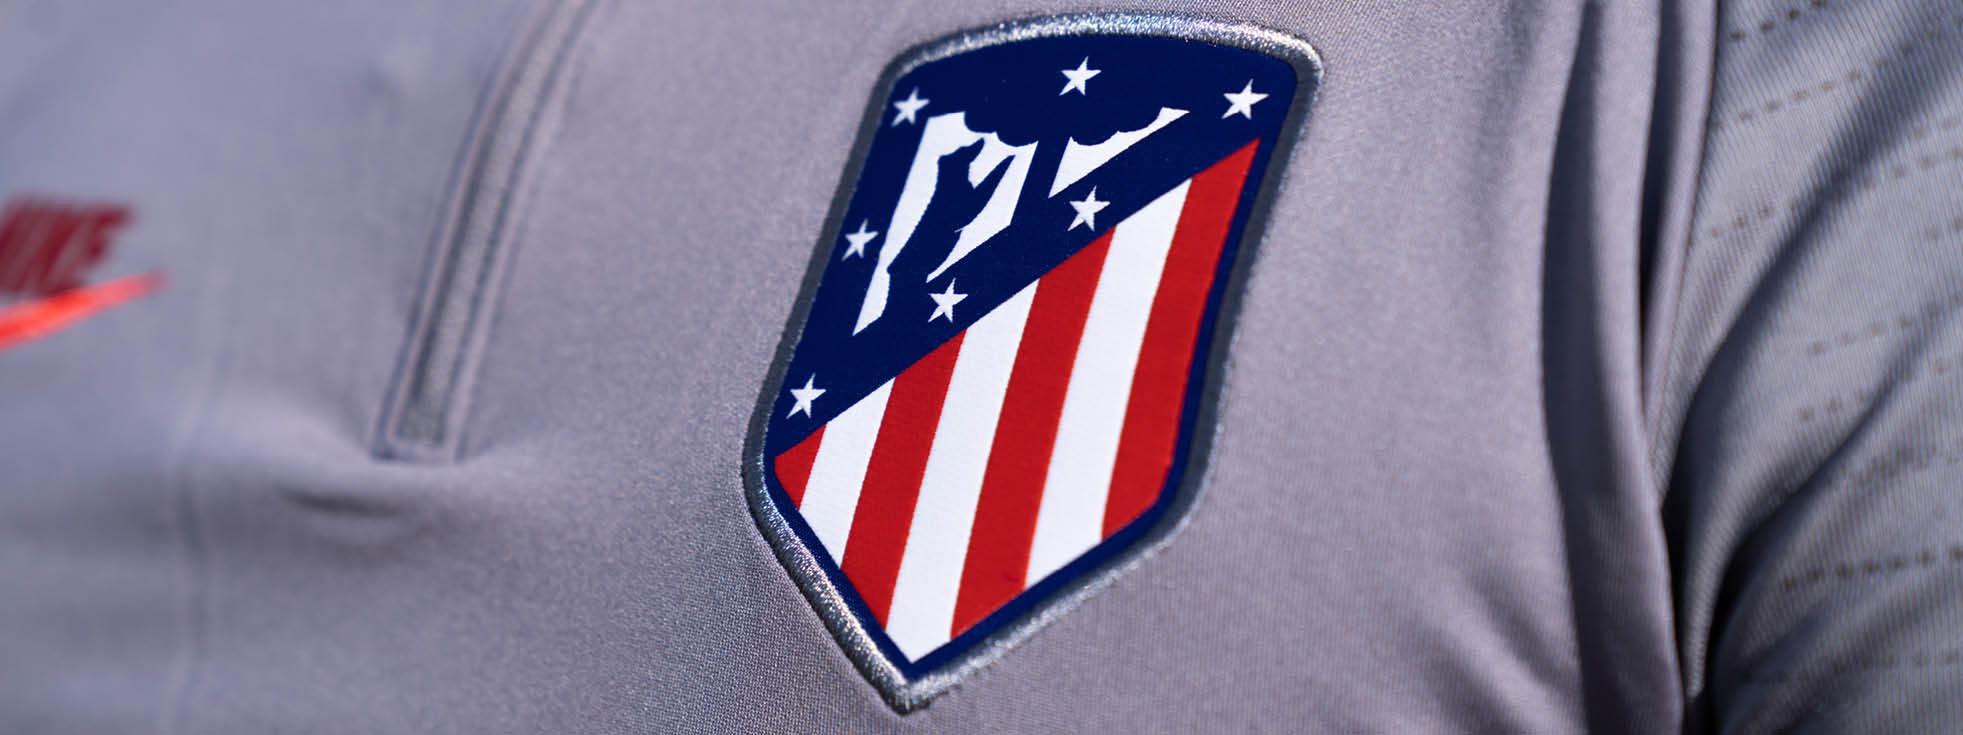 ATLÉTICO DE MADRID EU TRAINING TOP 2019-2020